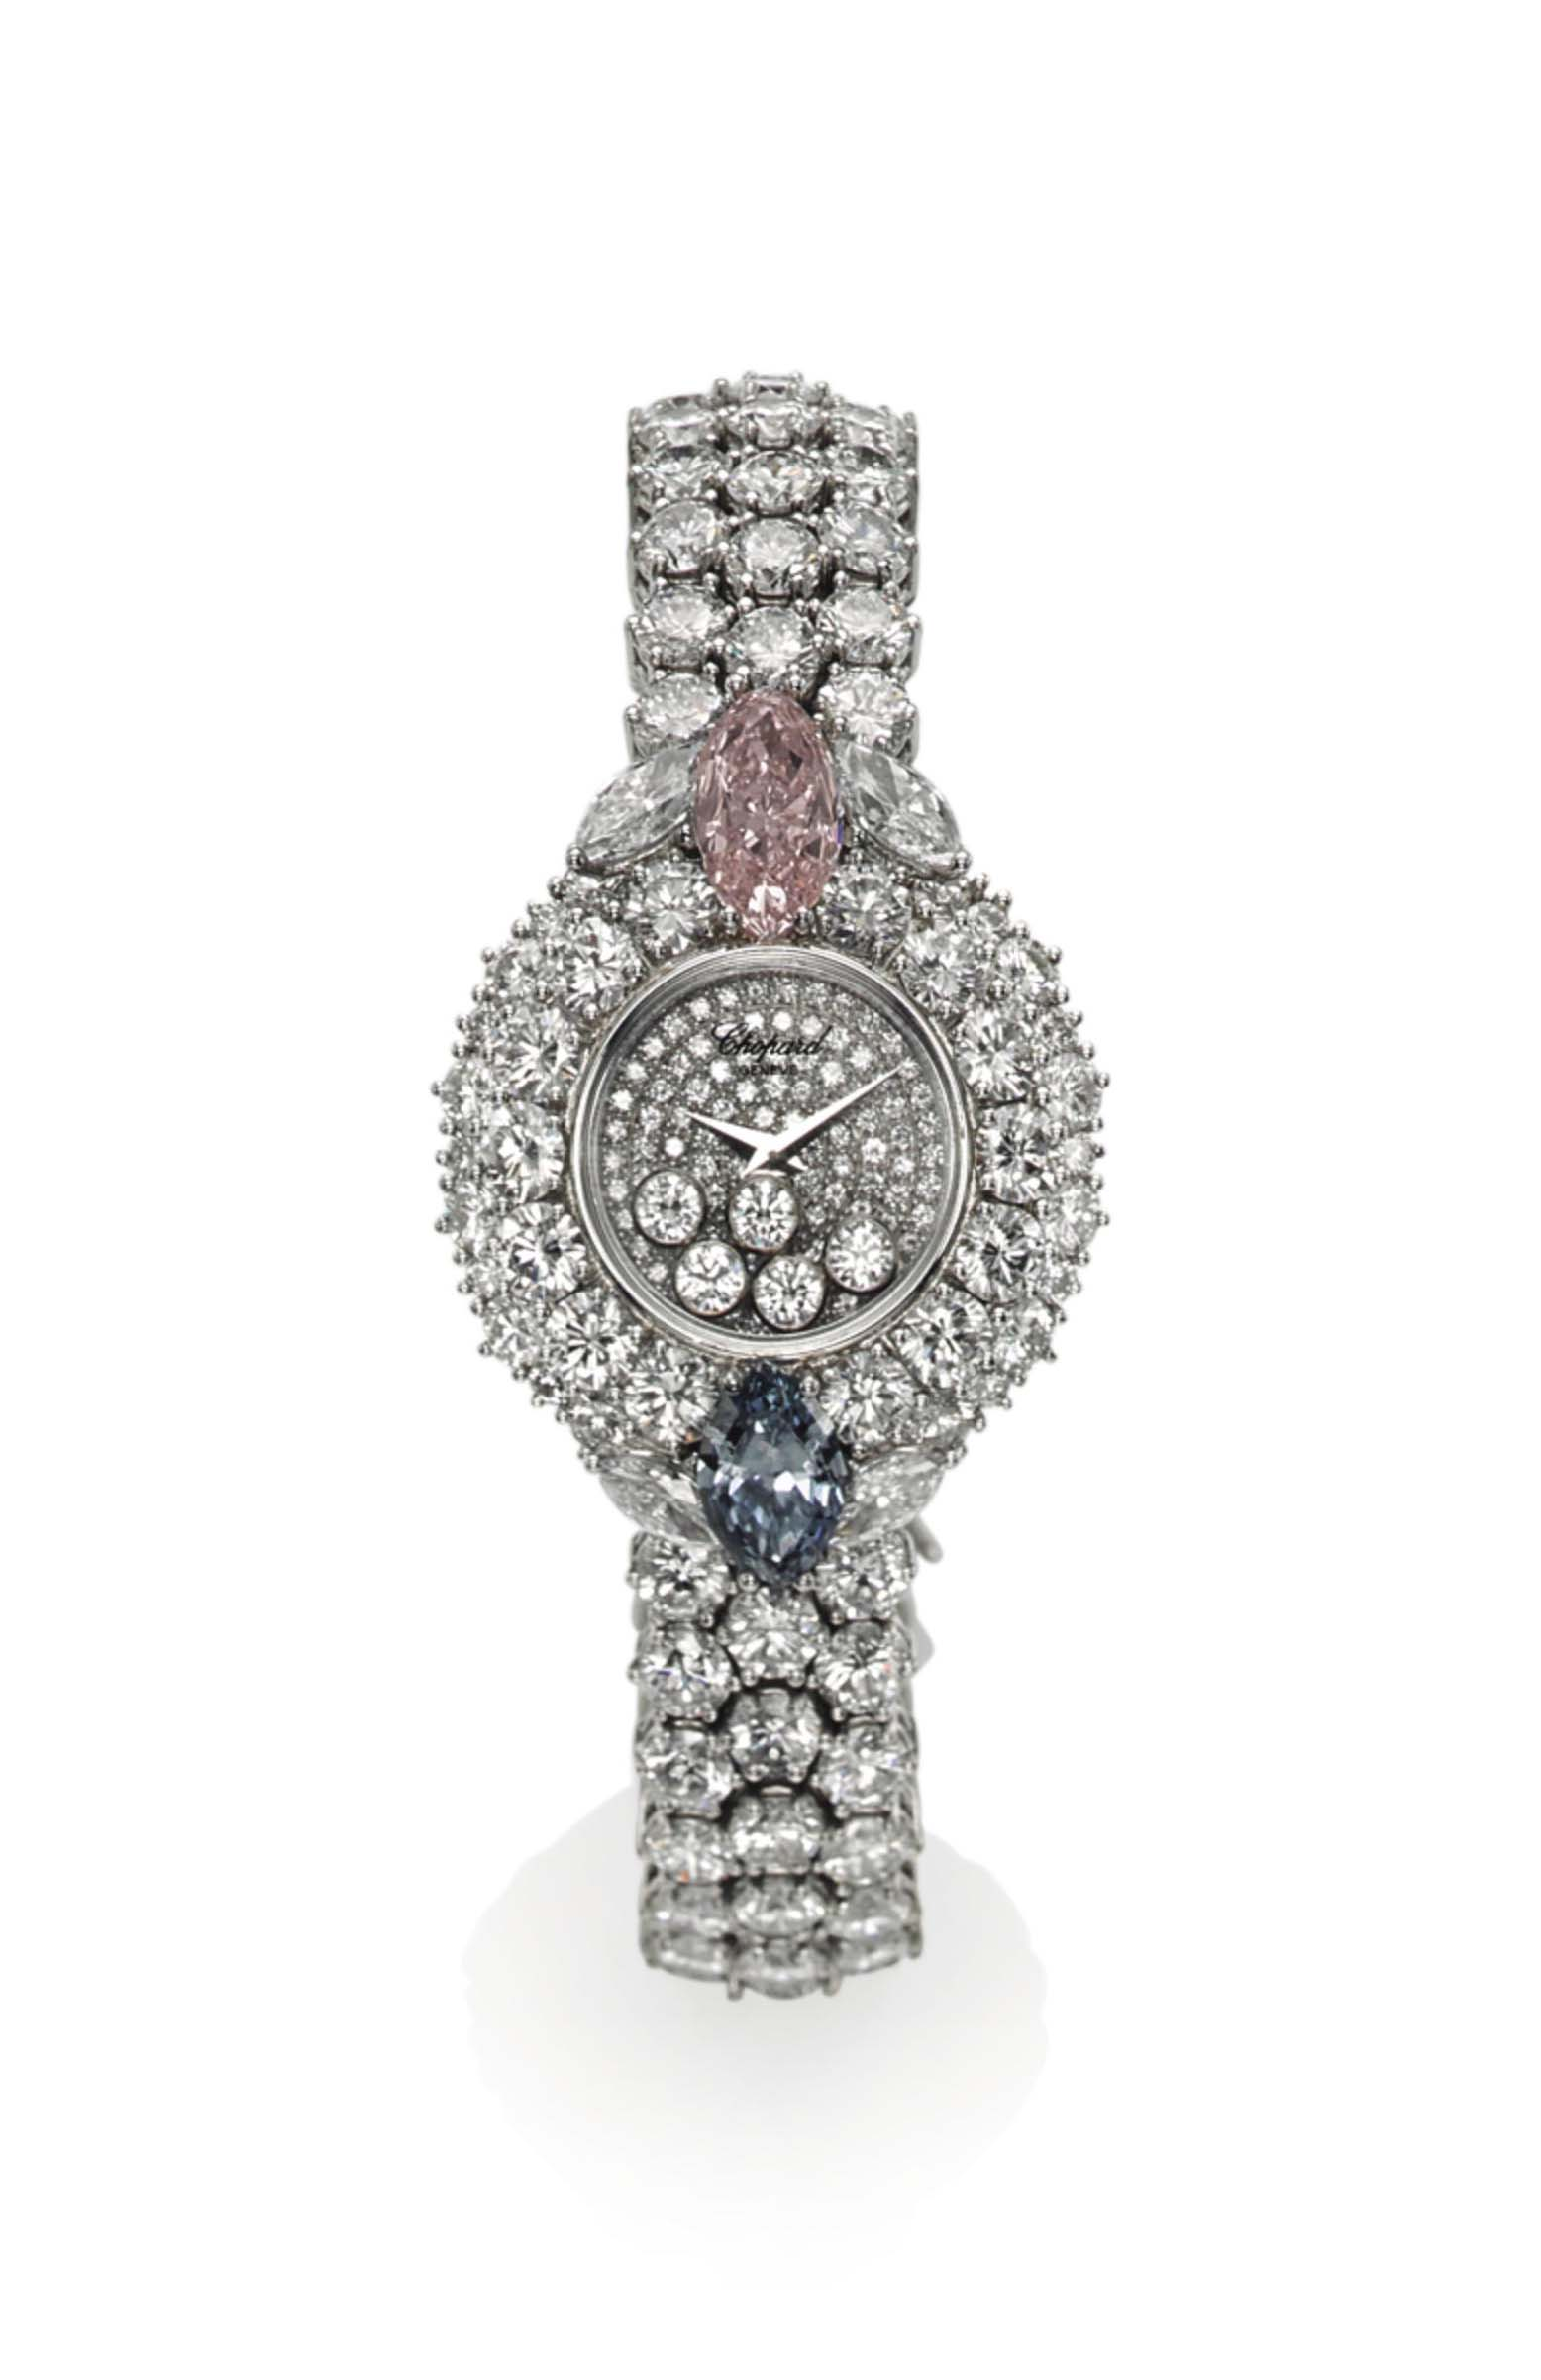 A UNIQUE DIAMOND AND COLOURED DIAMOND 'HAPPY DIAMOND' WRISTWATCH, BY CHOPARD